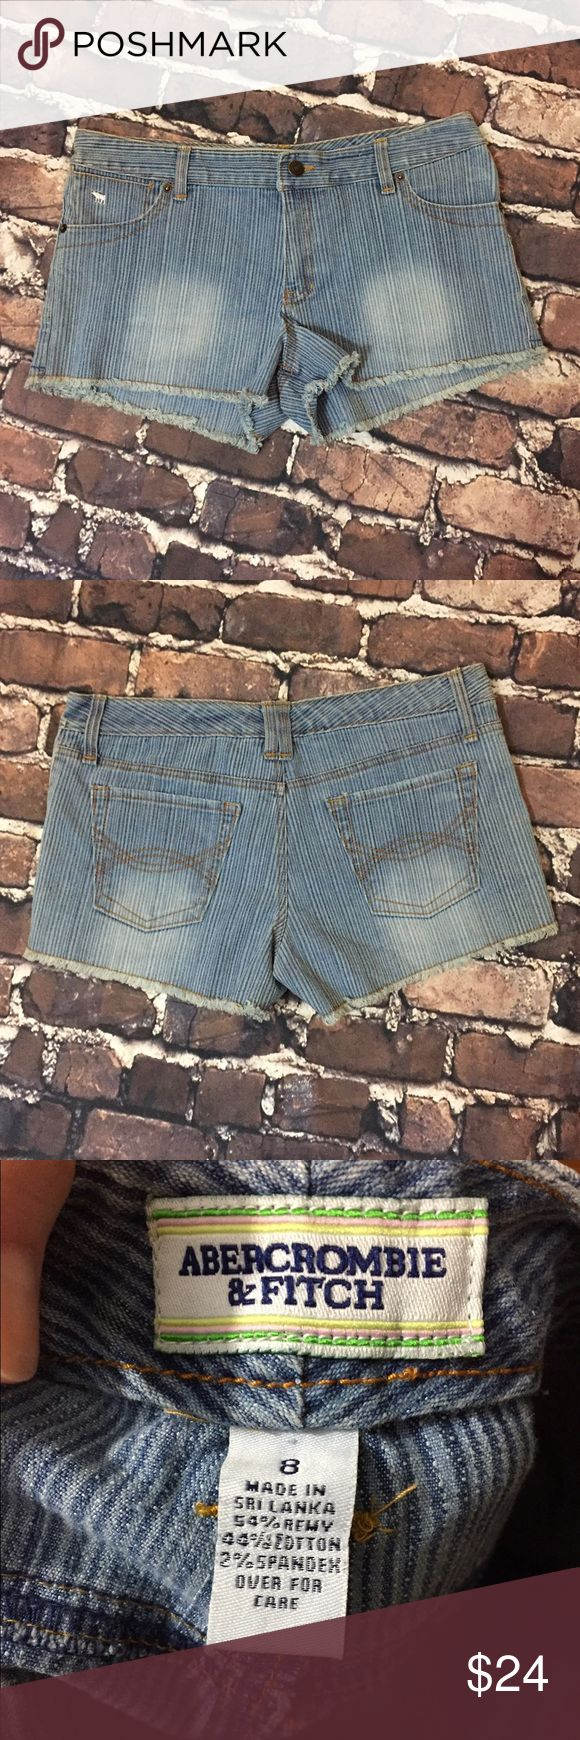 Abercrombie and Fitch shorts Size 8 denim Abercrombie shorts Abercrombie & Fitch Shorts Jean Shorts